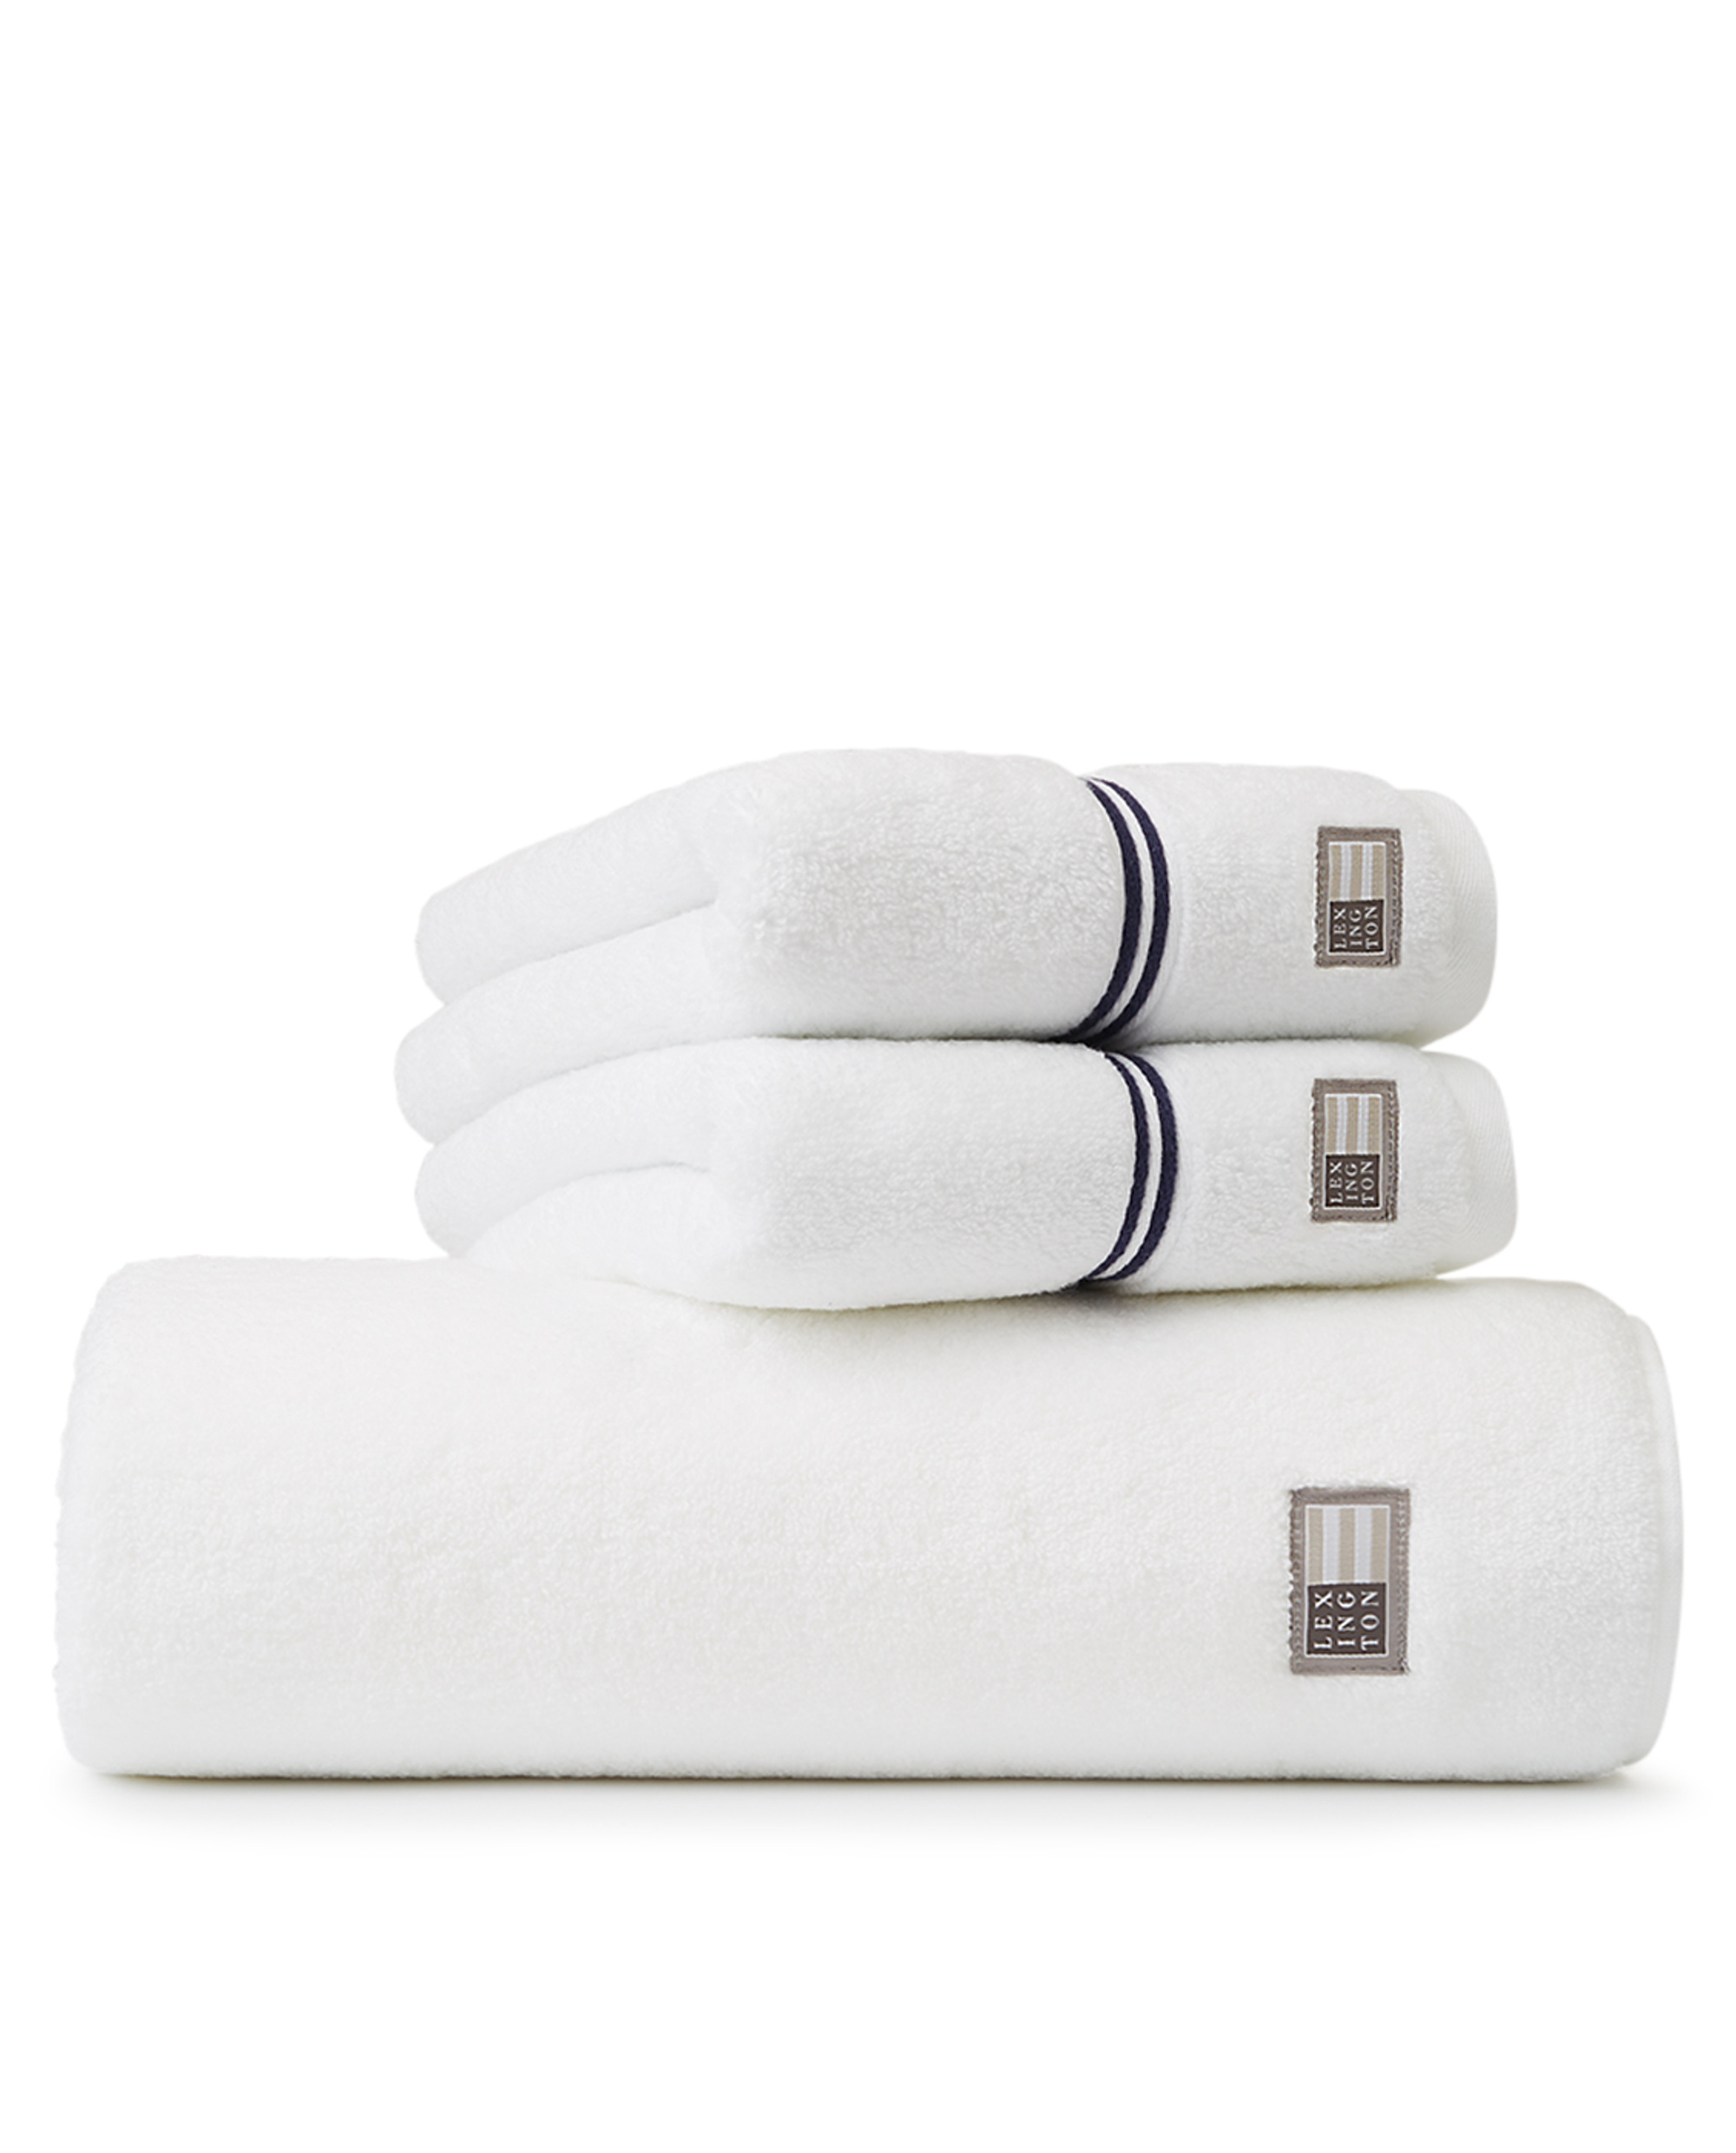 Lexington Hotel Towel White/Blue